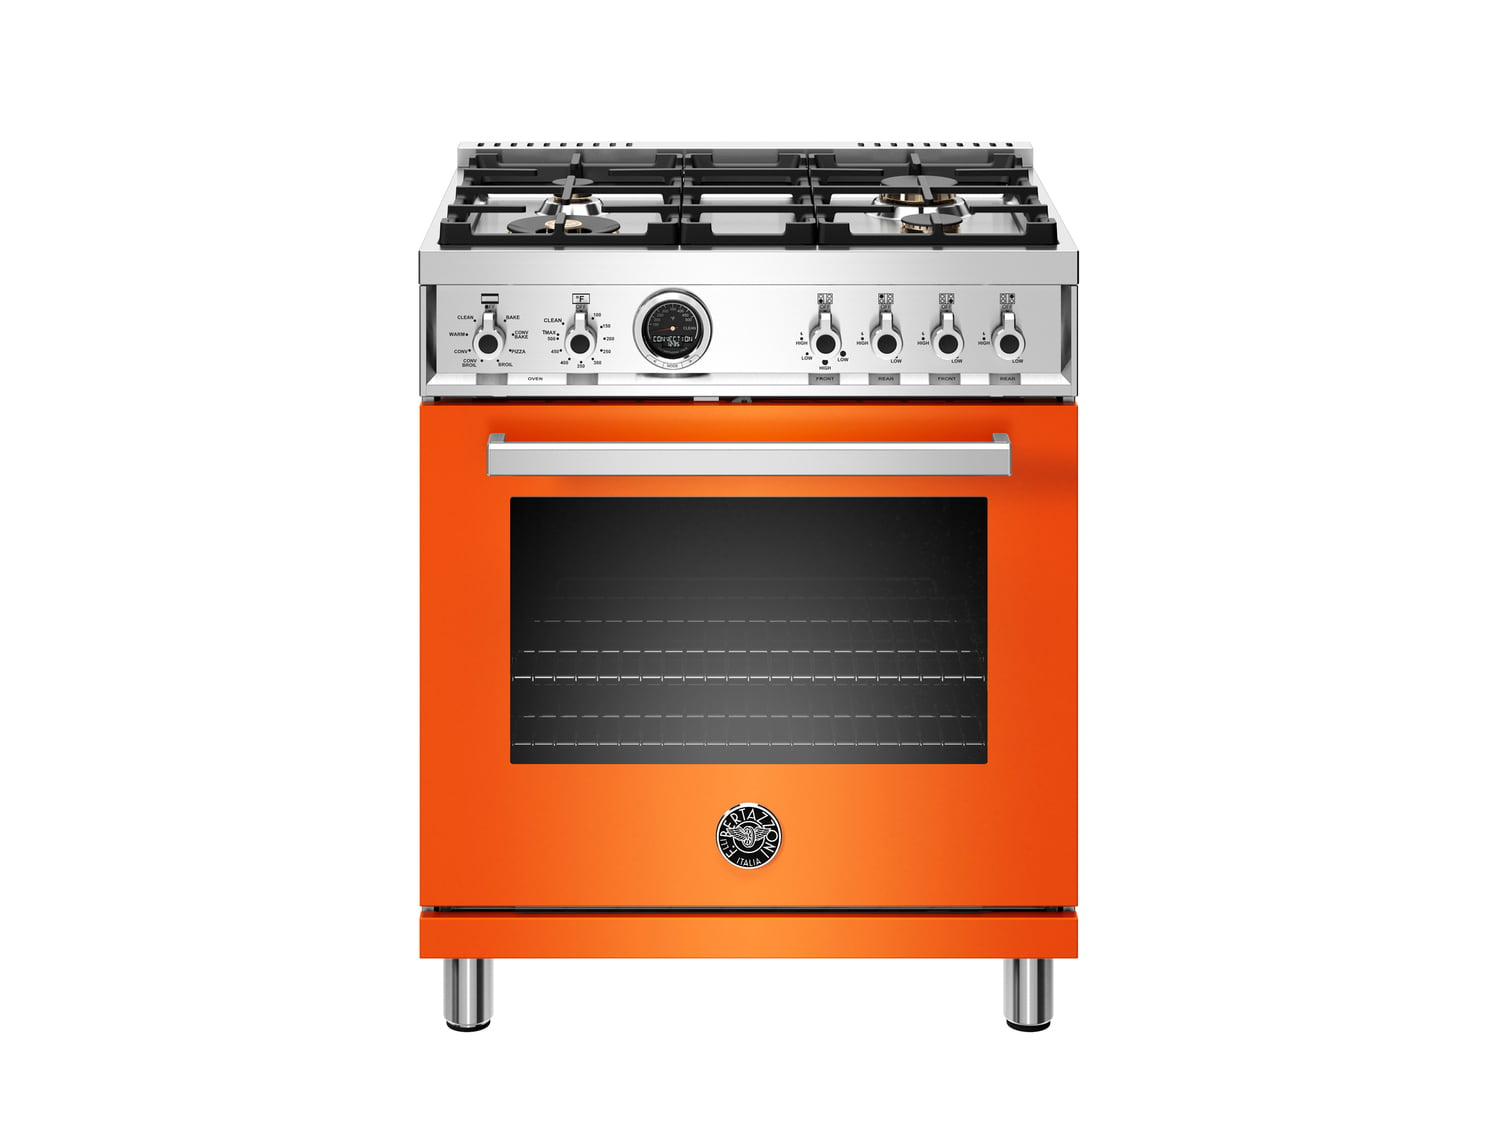 Load image into Gallery viewer, Bertazzoni PROF304DFSART 30 Inch Dual Fuel Range, 4 Brass Burner, Electric Self-Clean Oven Arancio